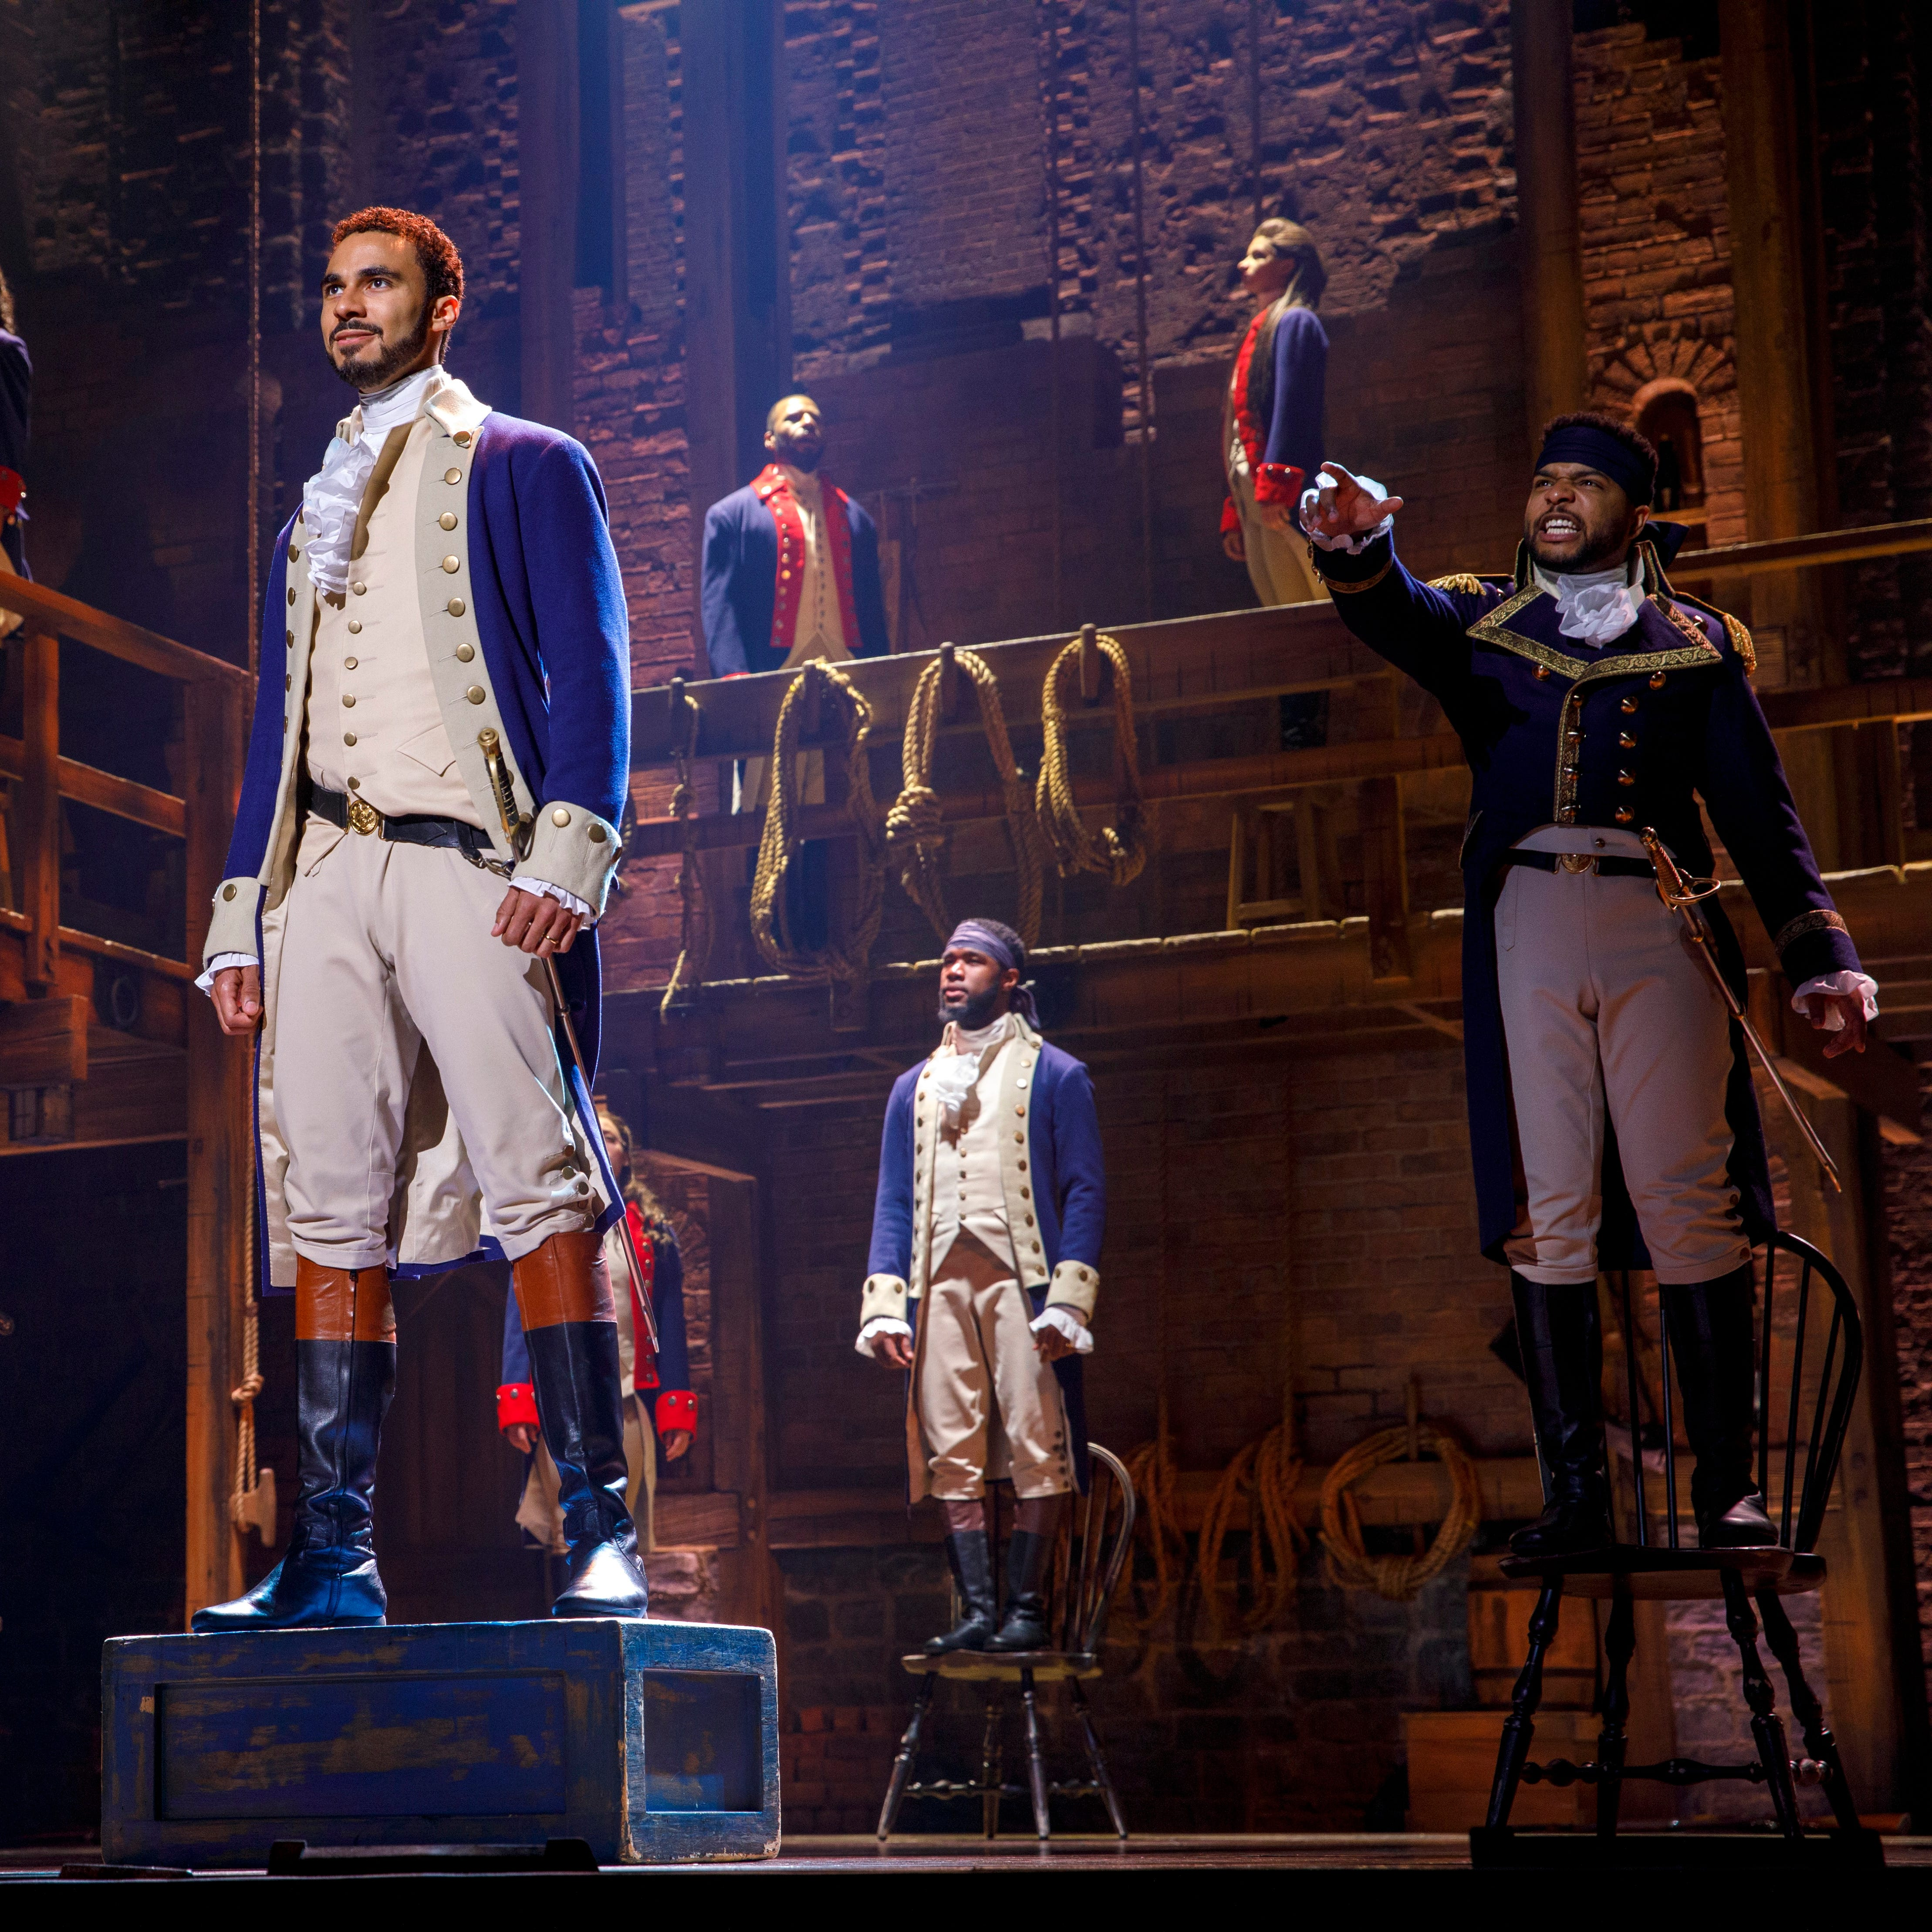 Don't throw away your shot: With 'Hamilton' ahead, Fox Cities PAC warns of fraudulent ticket offers